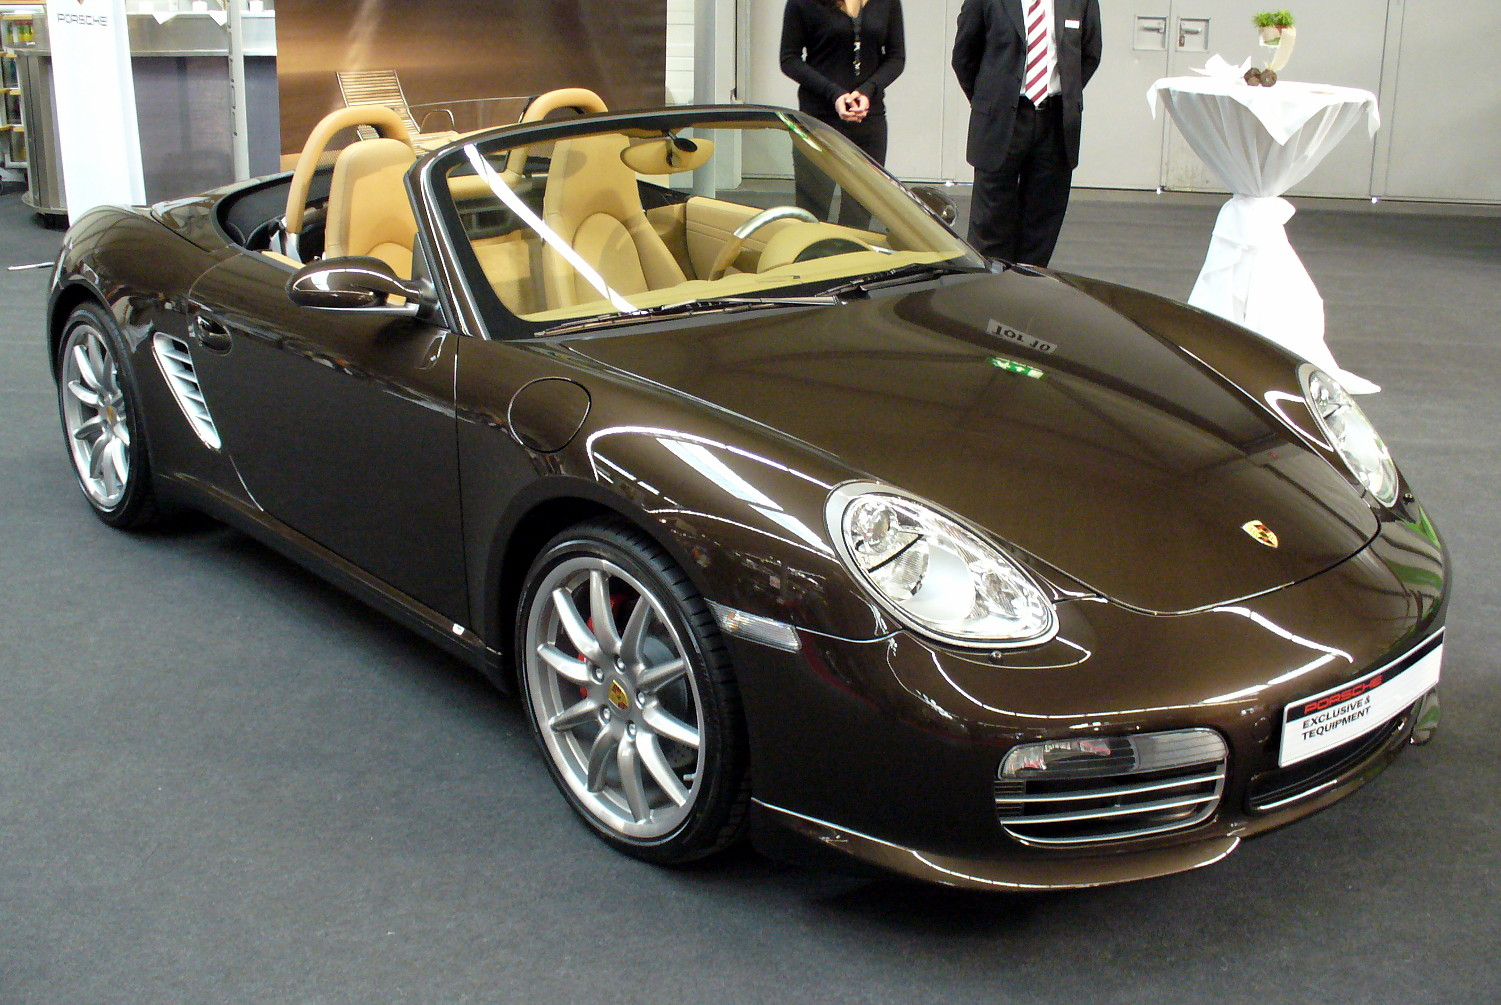 file porsche boxster ame jpg wikimedia commons. Black Bedroom Furniture Sets. Home Design Ideas